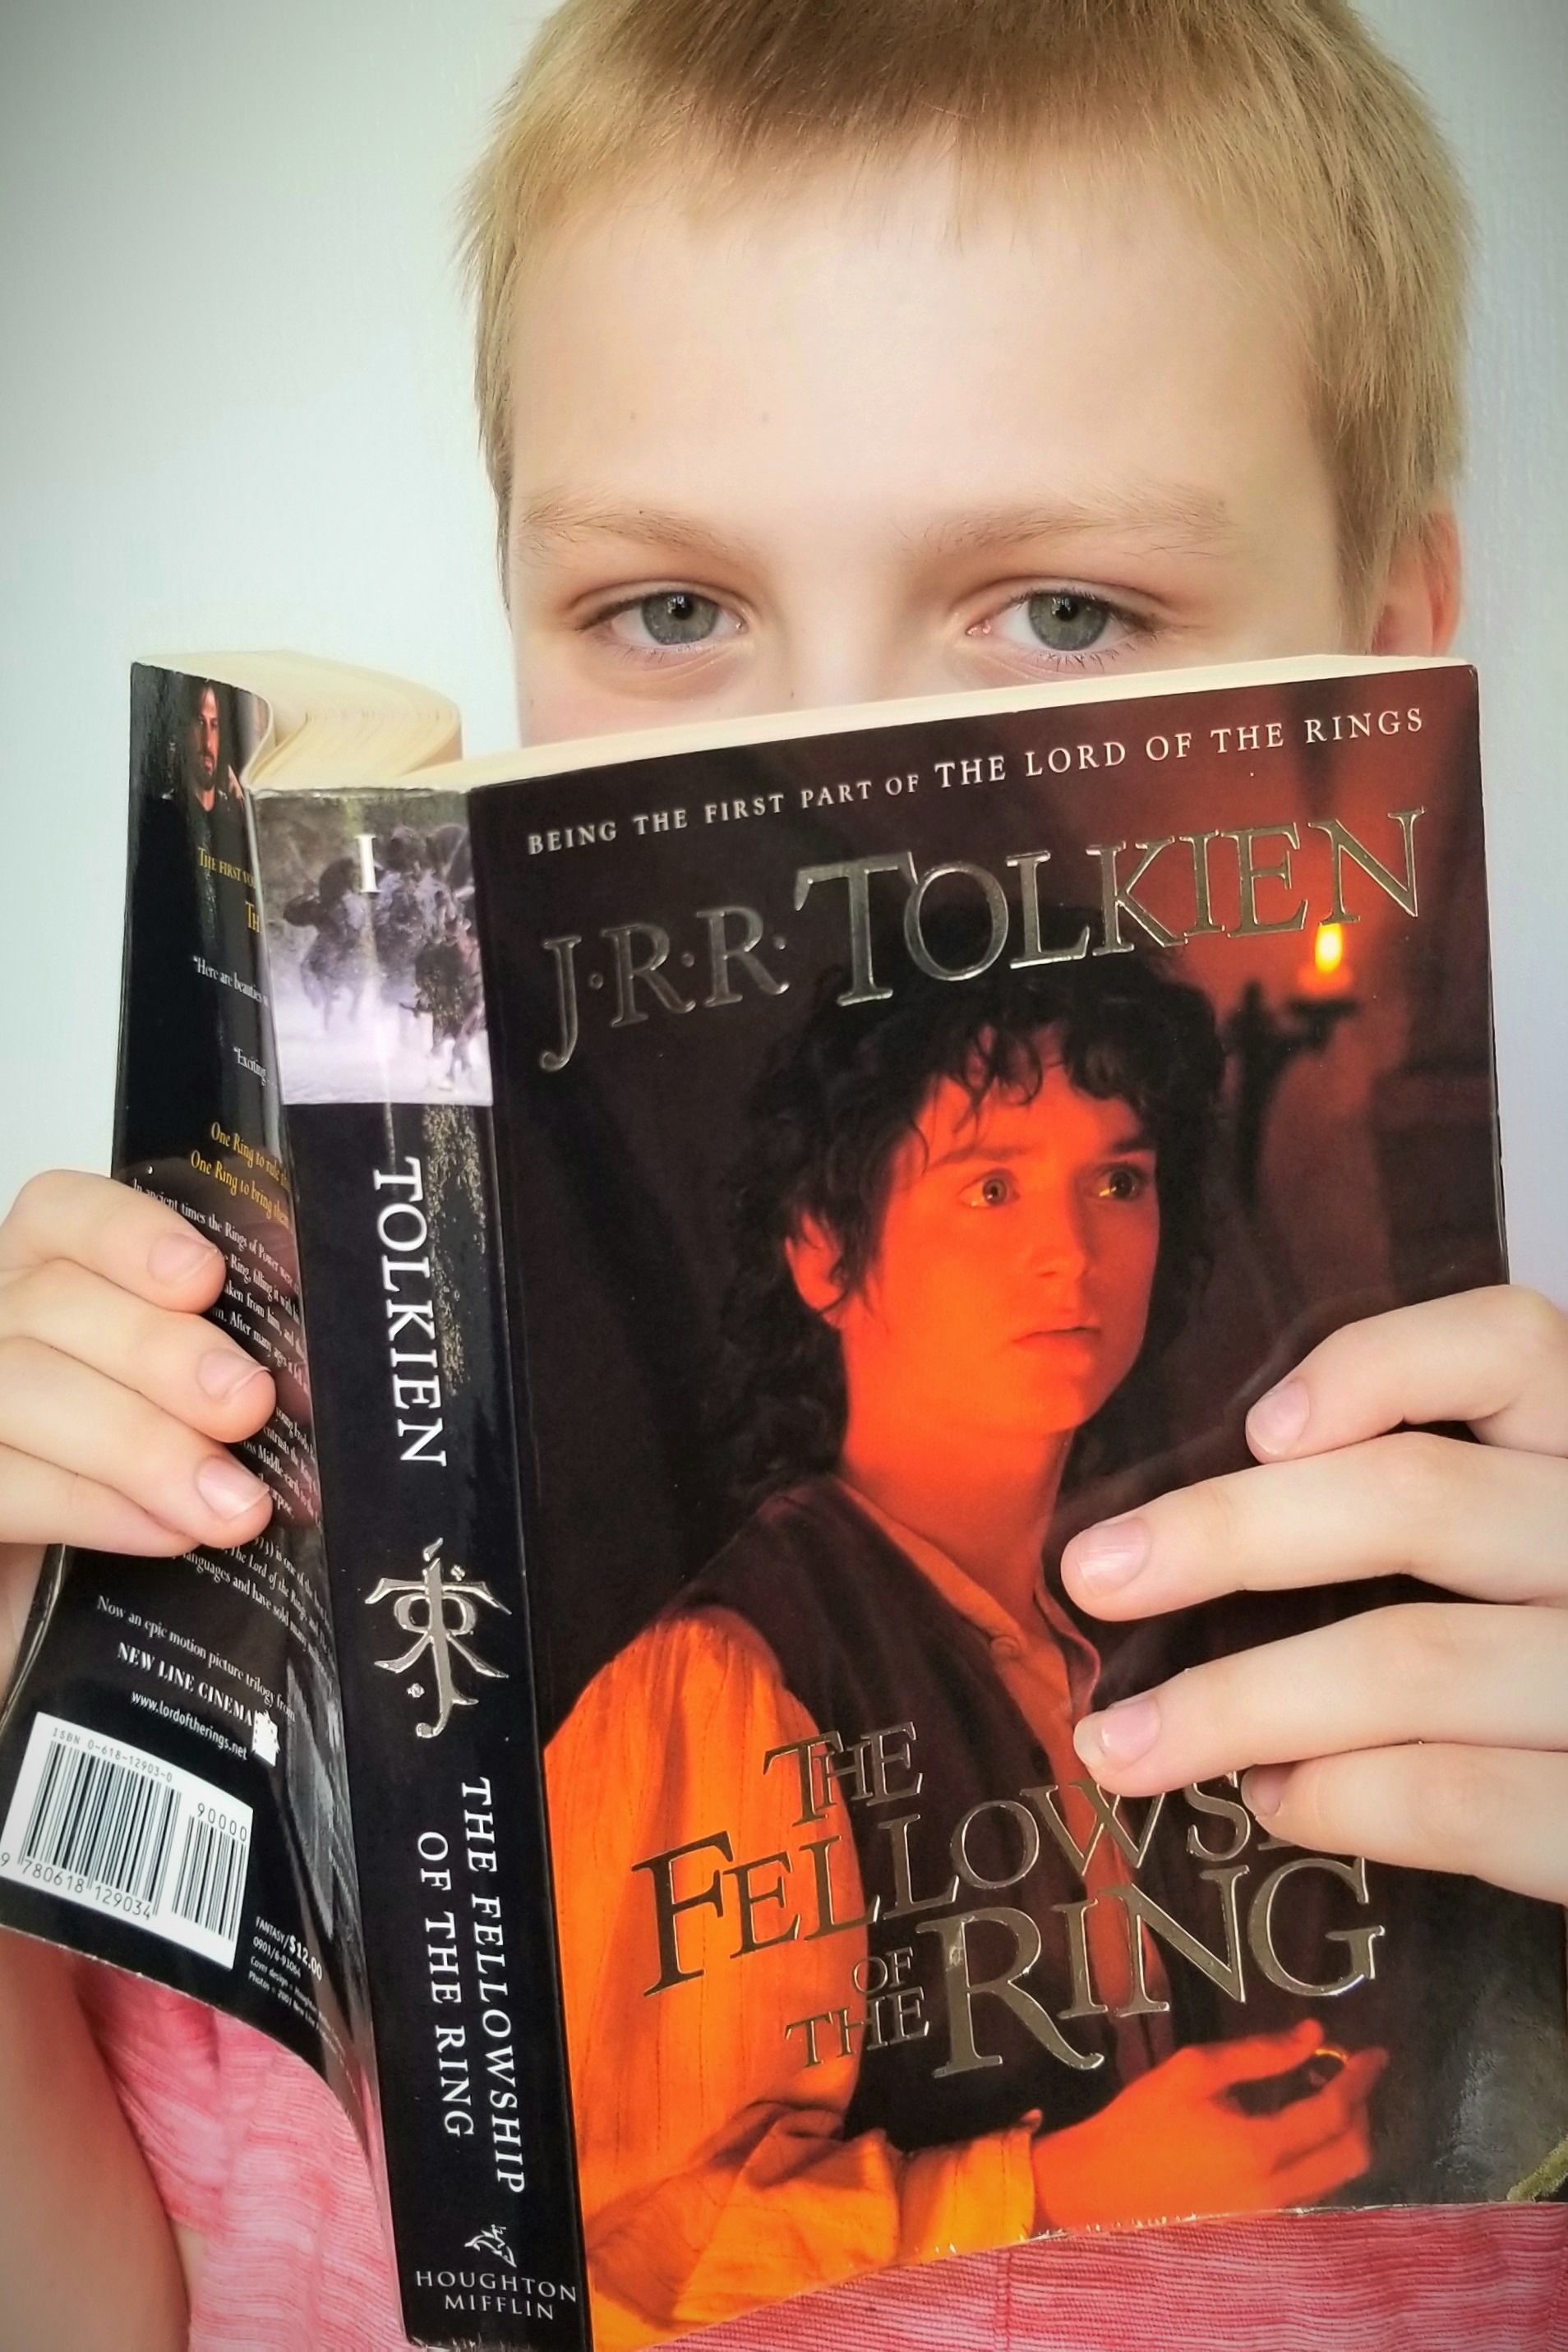 One Ring To Rule Them All Quote Page Number One Ring To Rule Them All The Fellowship Of The Ring Kids Book Review For Lord Of The Rings Book Review Blogs Fellowship Of The Ring Book Review